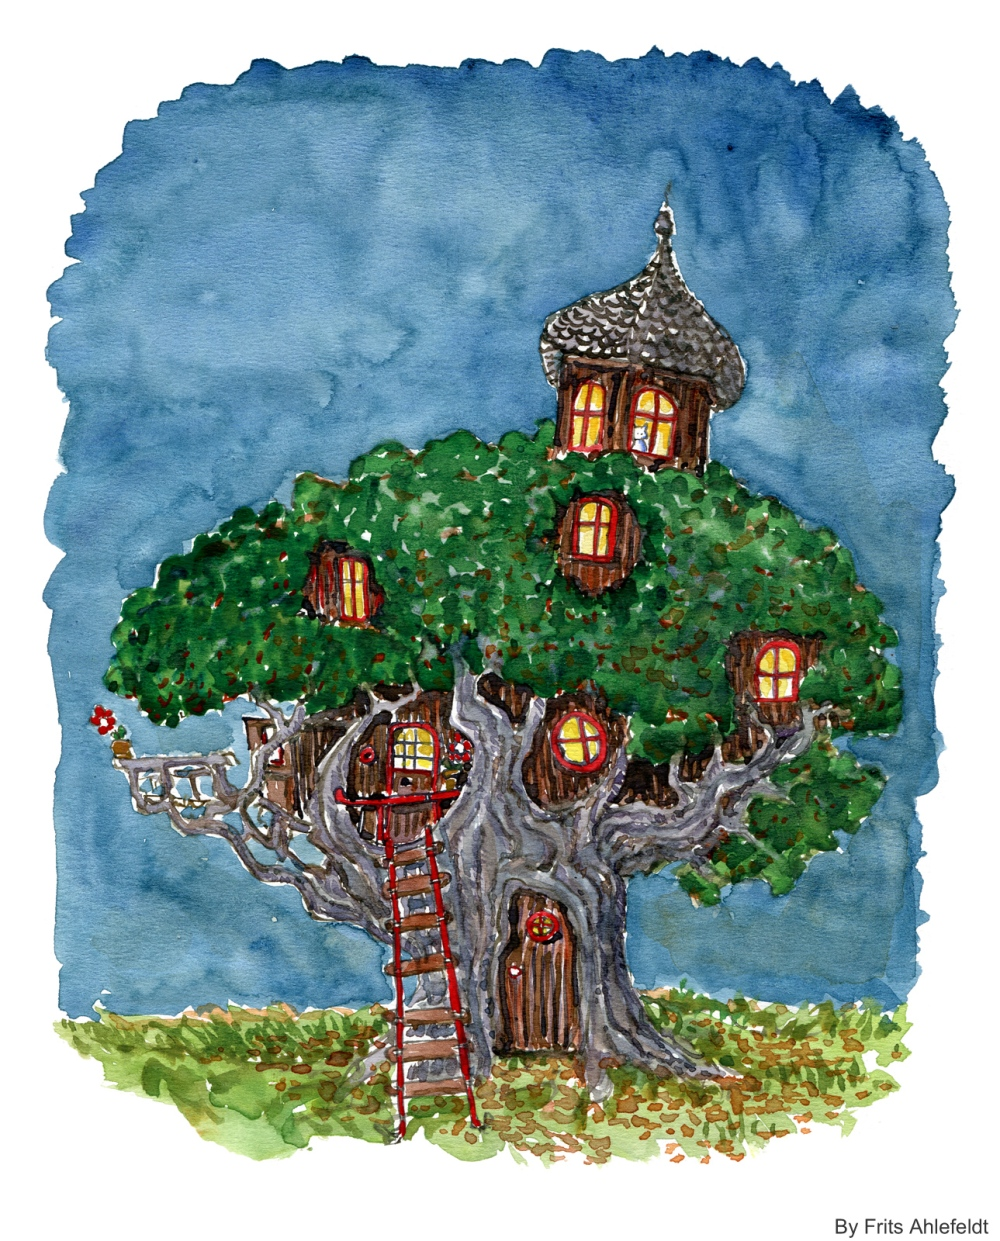 Drawing of a tree house with a cat